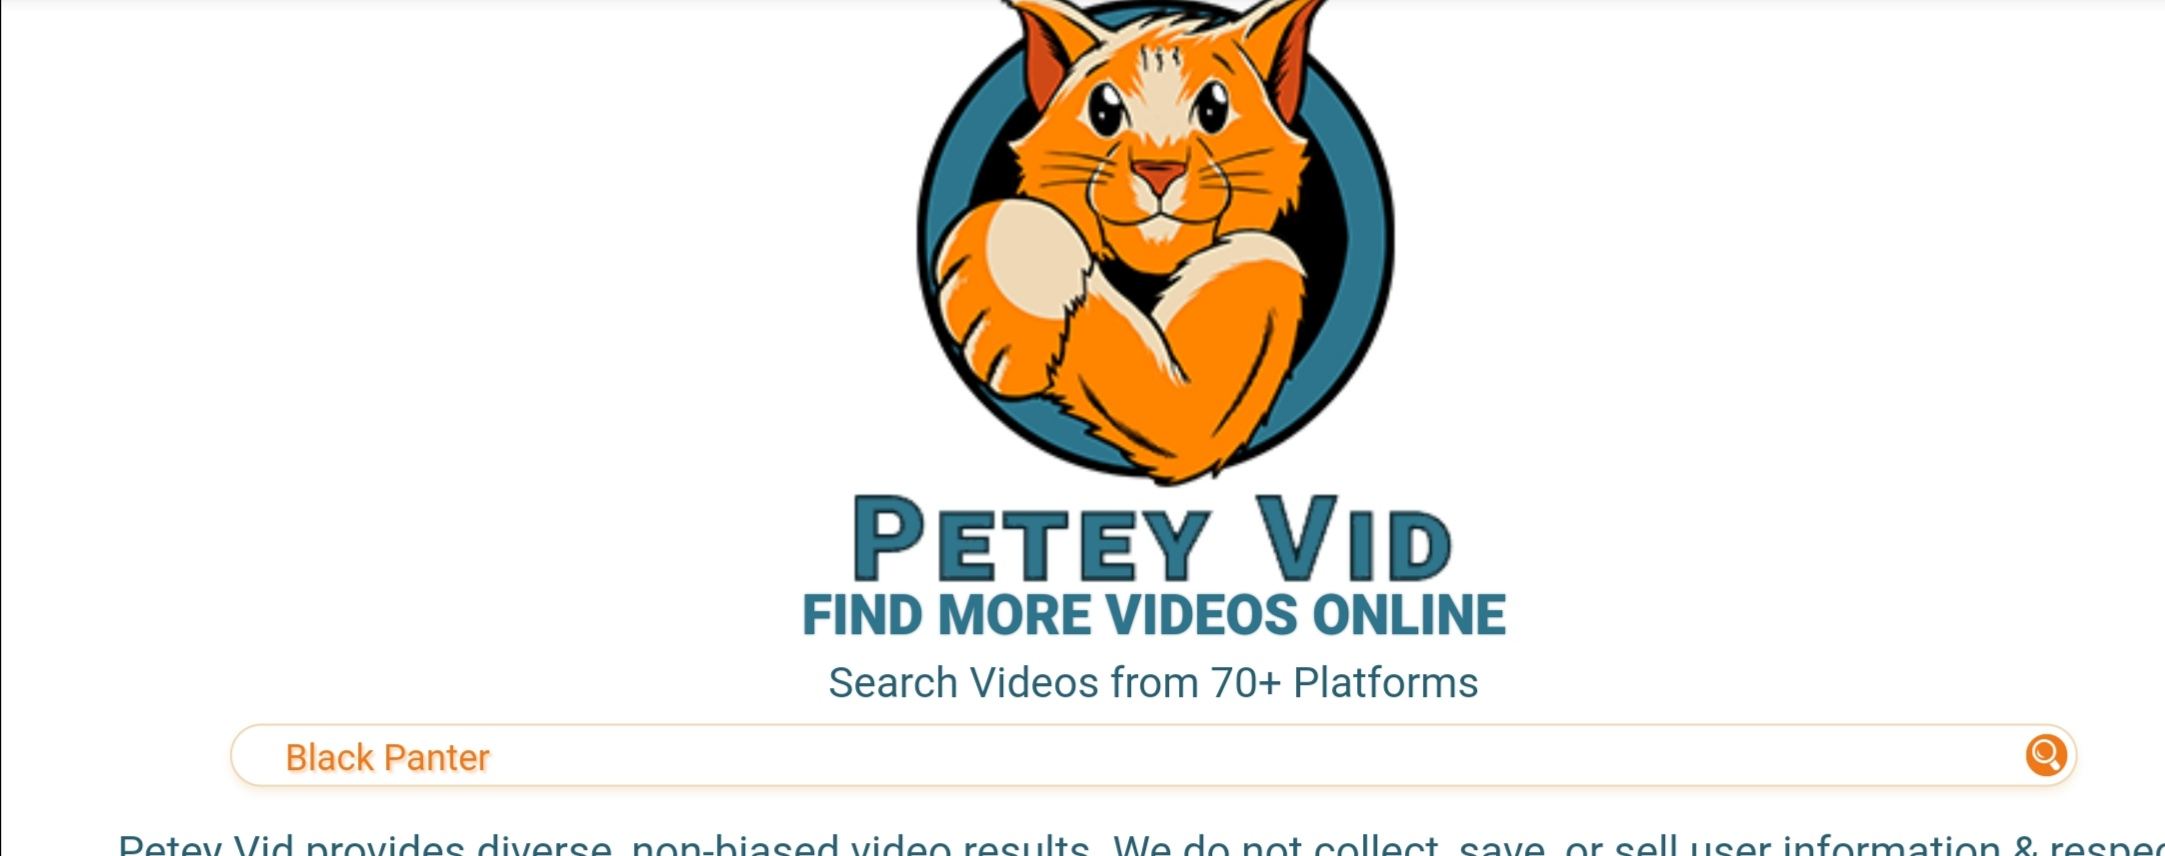 PeteyVid movies search engine